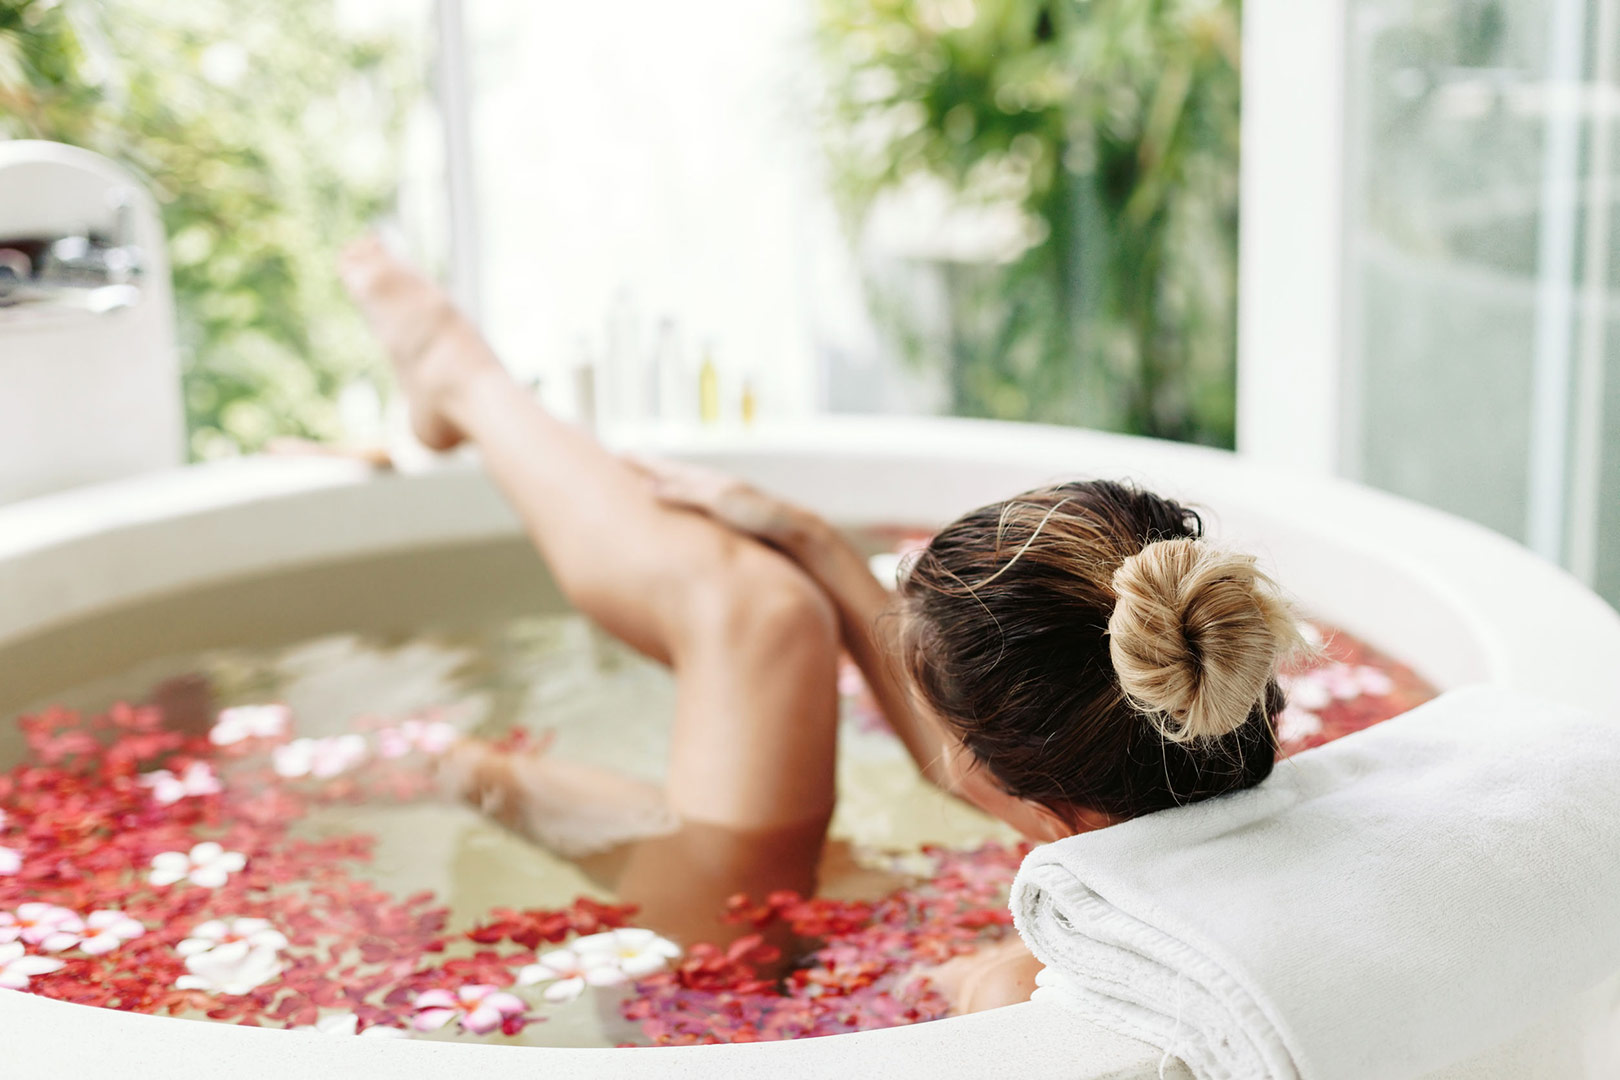 image-of-woman-in-a-bath-with-flowers